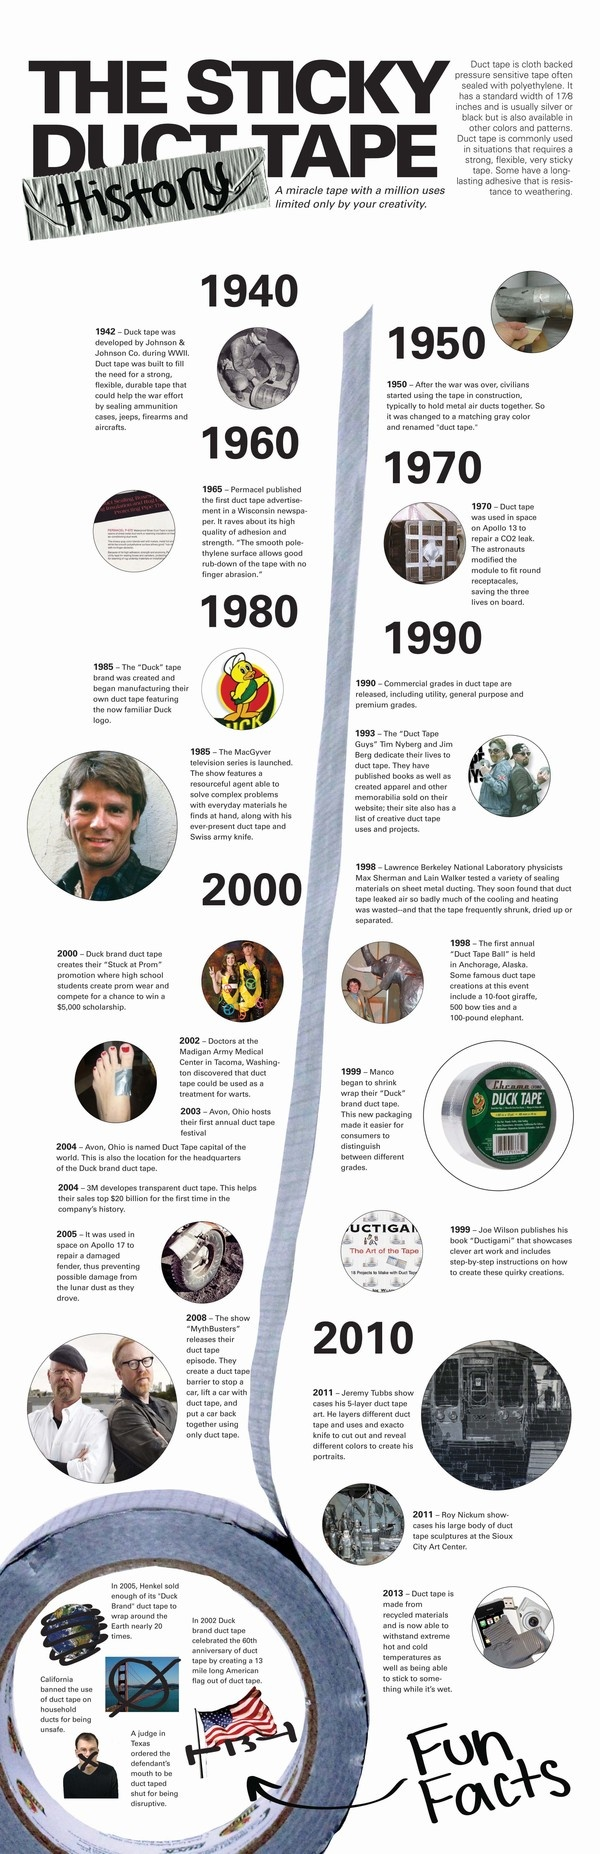 Duct Tape: Timeline & Concept Map by Kim Daley, via Behance. Duck Tape (additionally referred to as military tape) was developed in WWII in-order to form a water proof seal on ammunition cases. Permacell, a medical division of the company Johnson and Johnson, invented the original version of duck tape as a product that is strong yet can be applied with one hand.